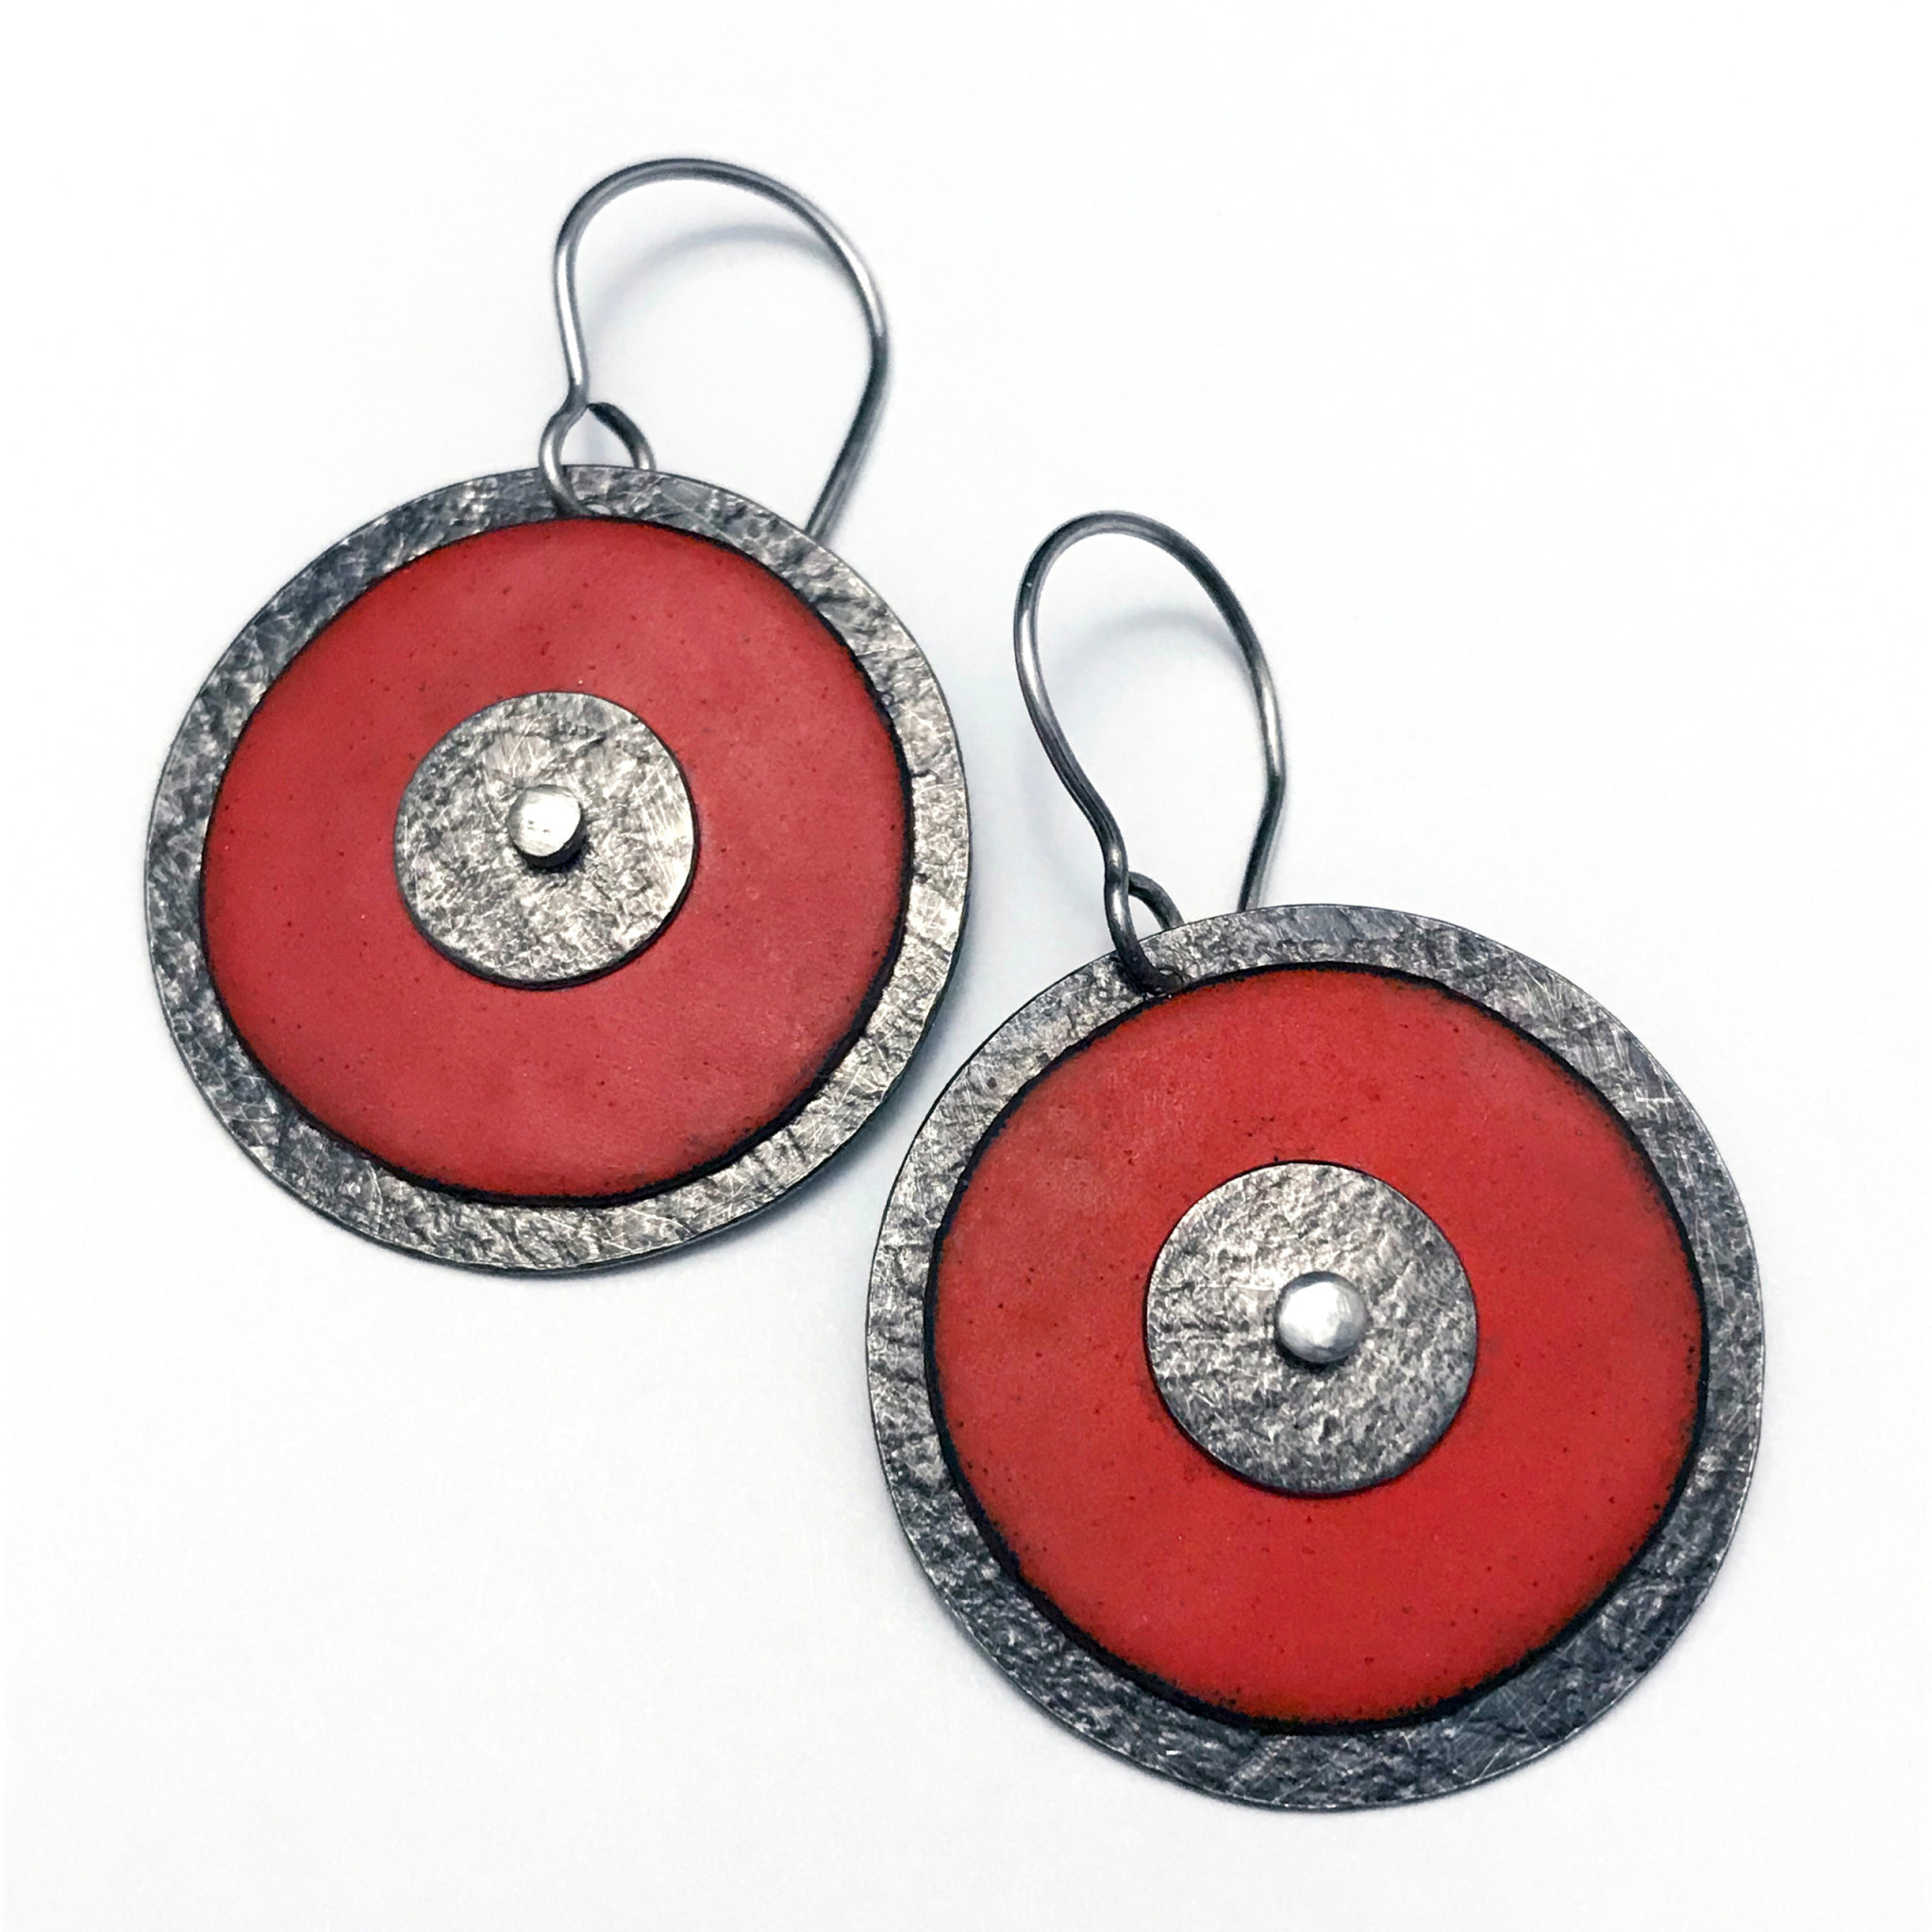 Susan Remnant Earrings - Triple Layer Disc with Red Enamel